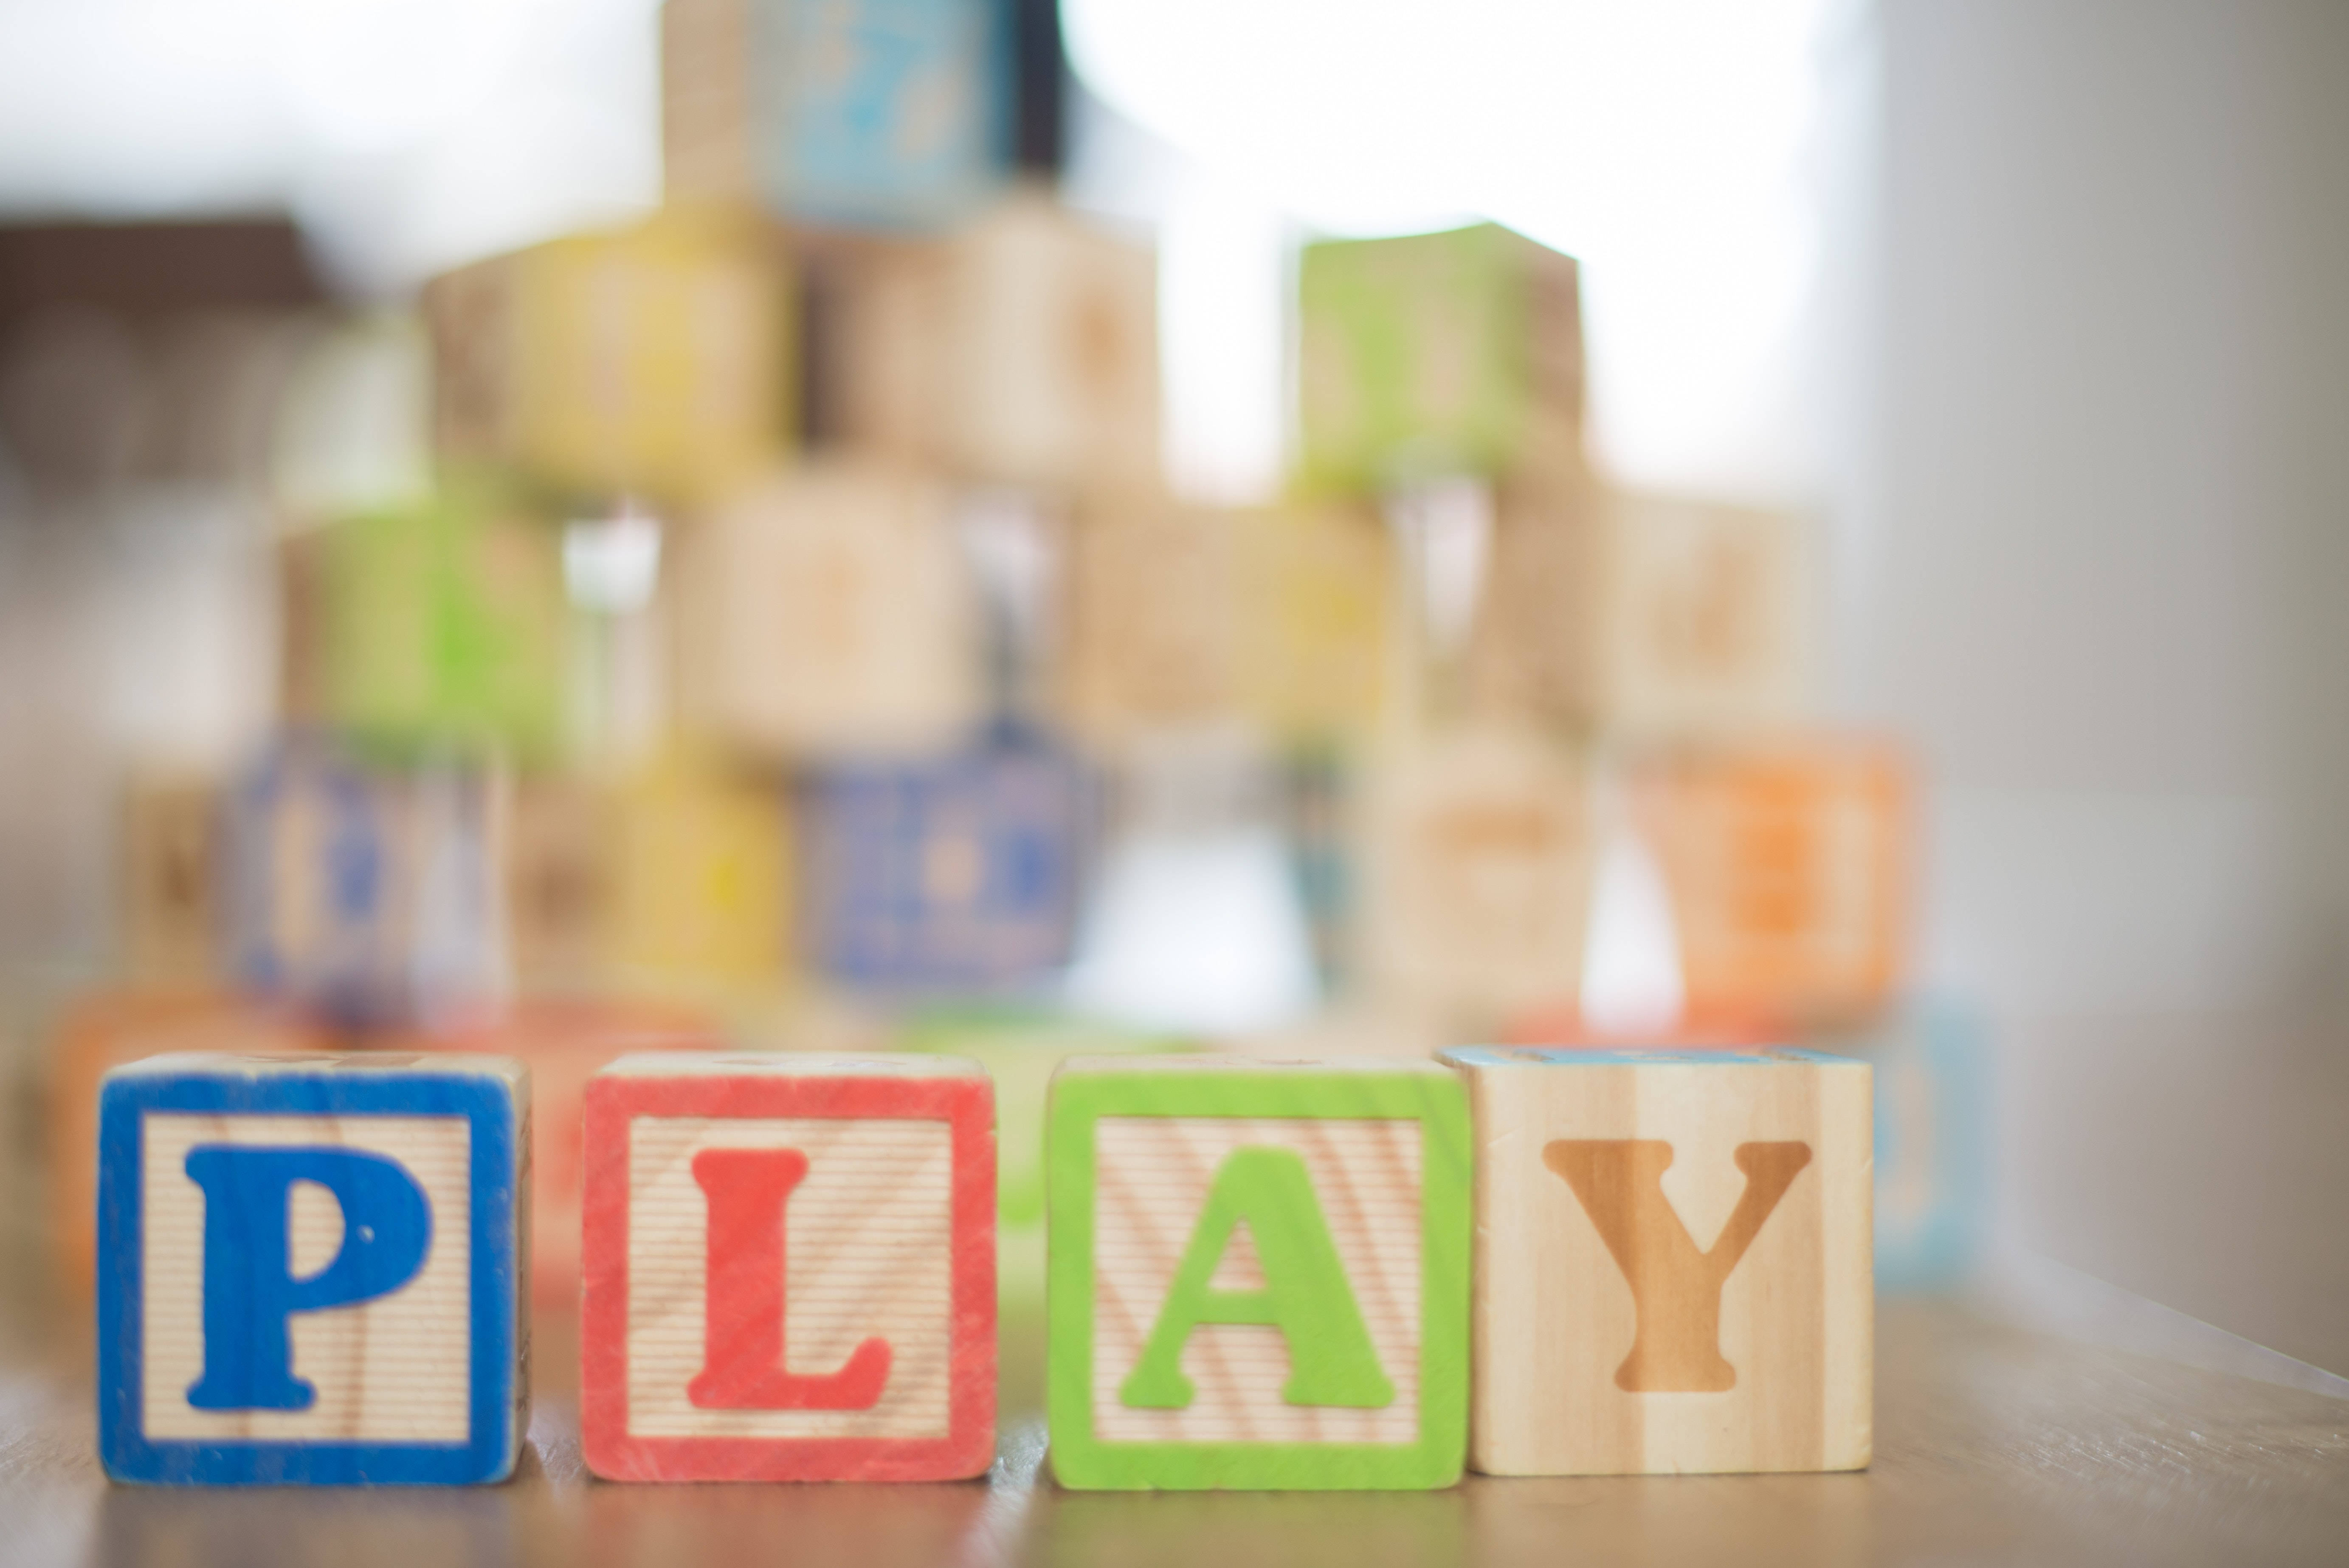 Alphabet Blocks Spelling Out Play